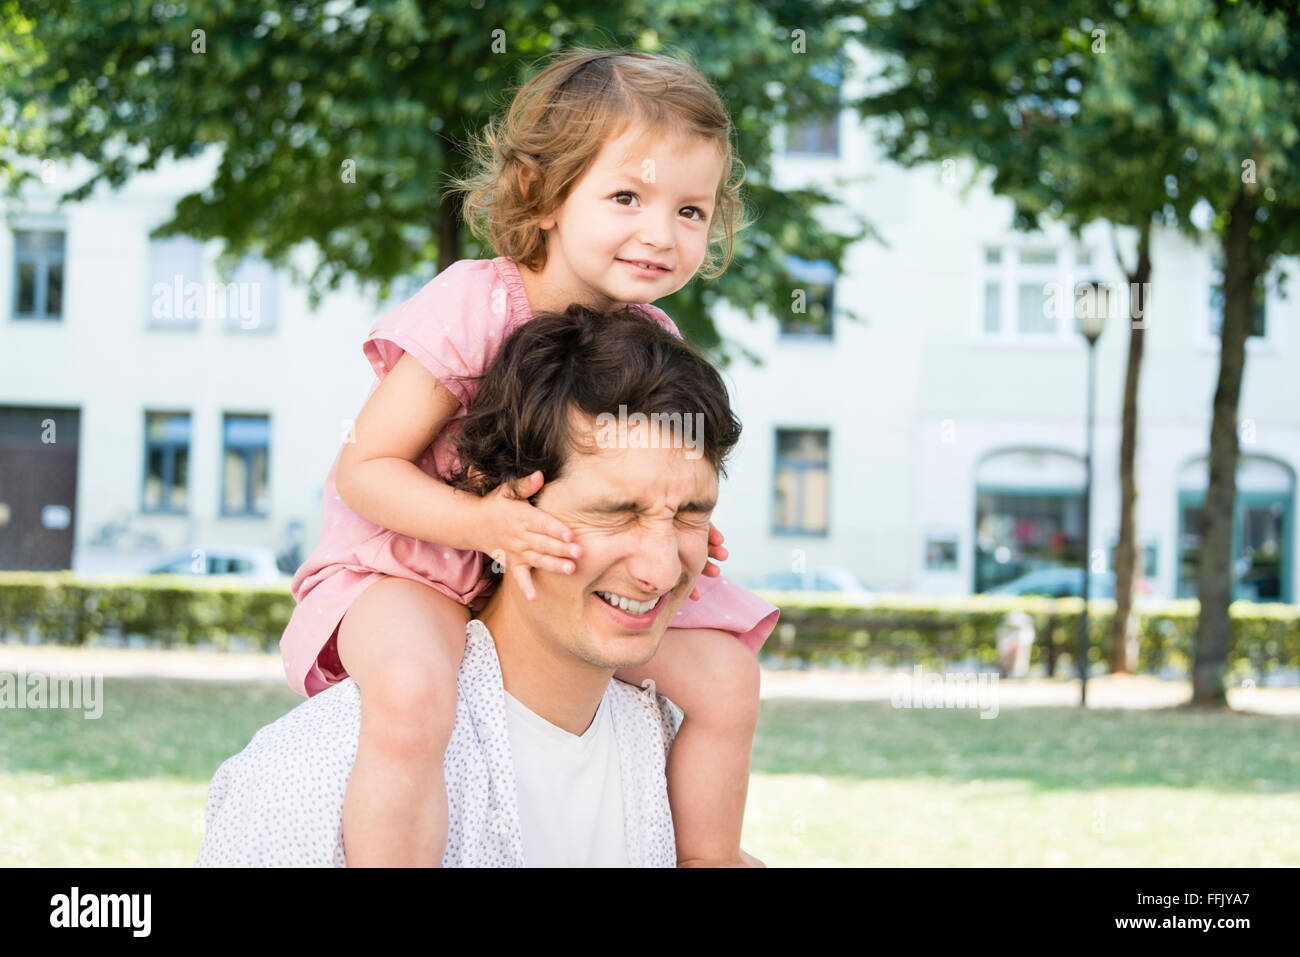 Father carrying daughter on shoulders - Stock Image